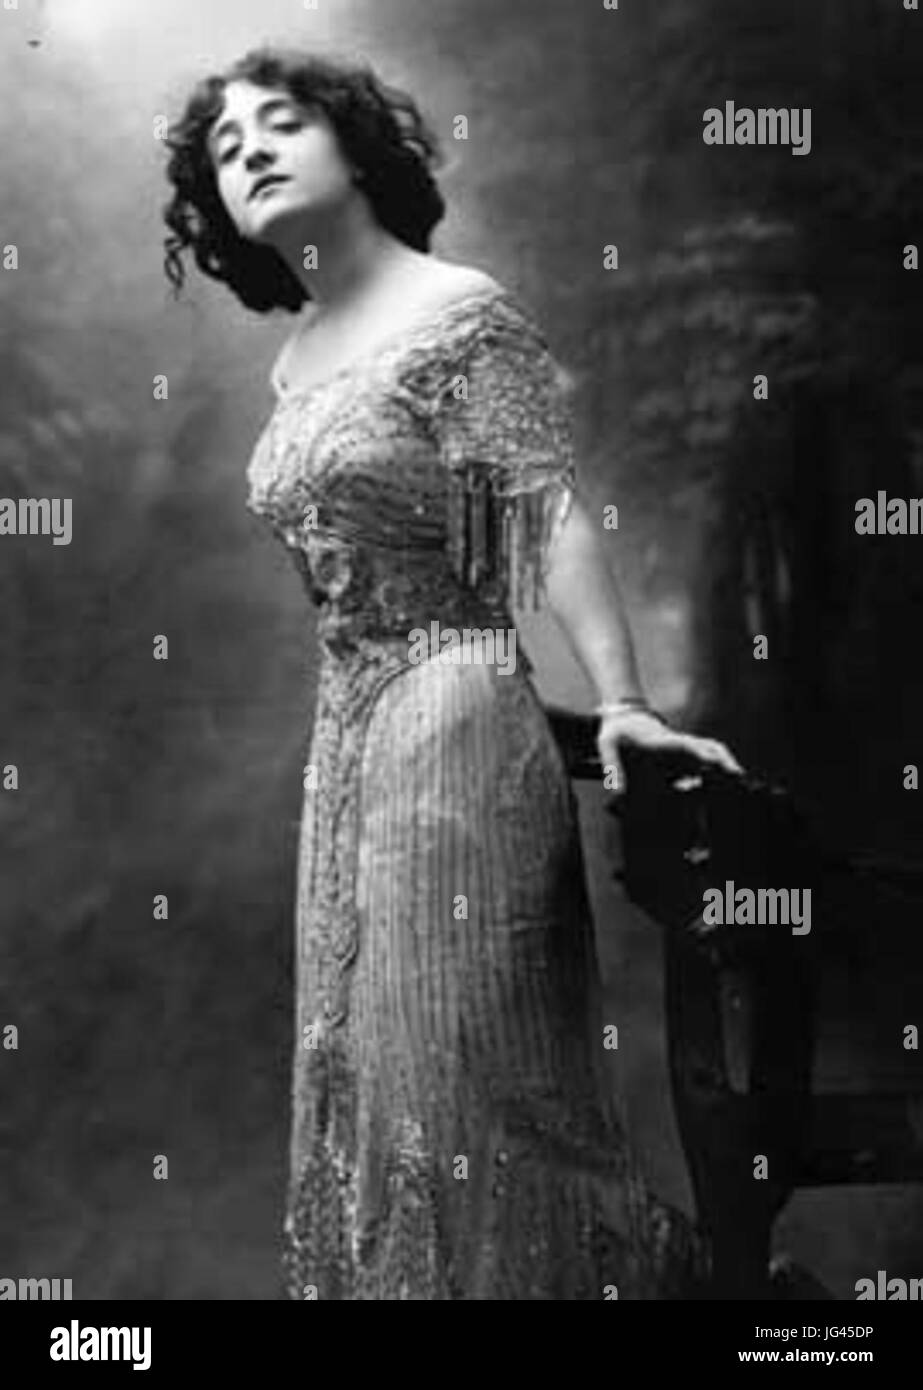 Thelma White images